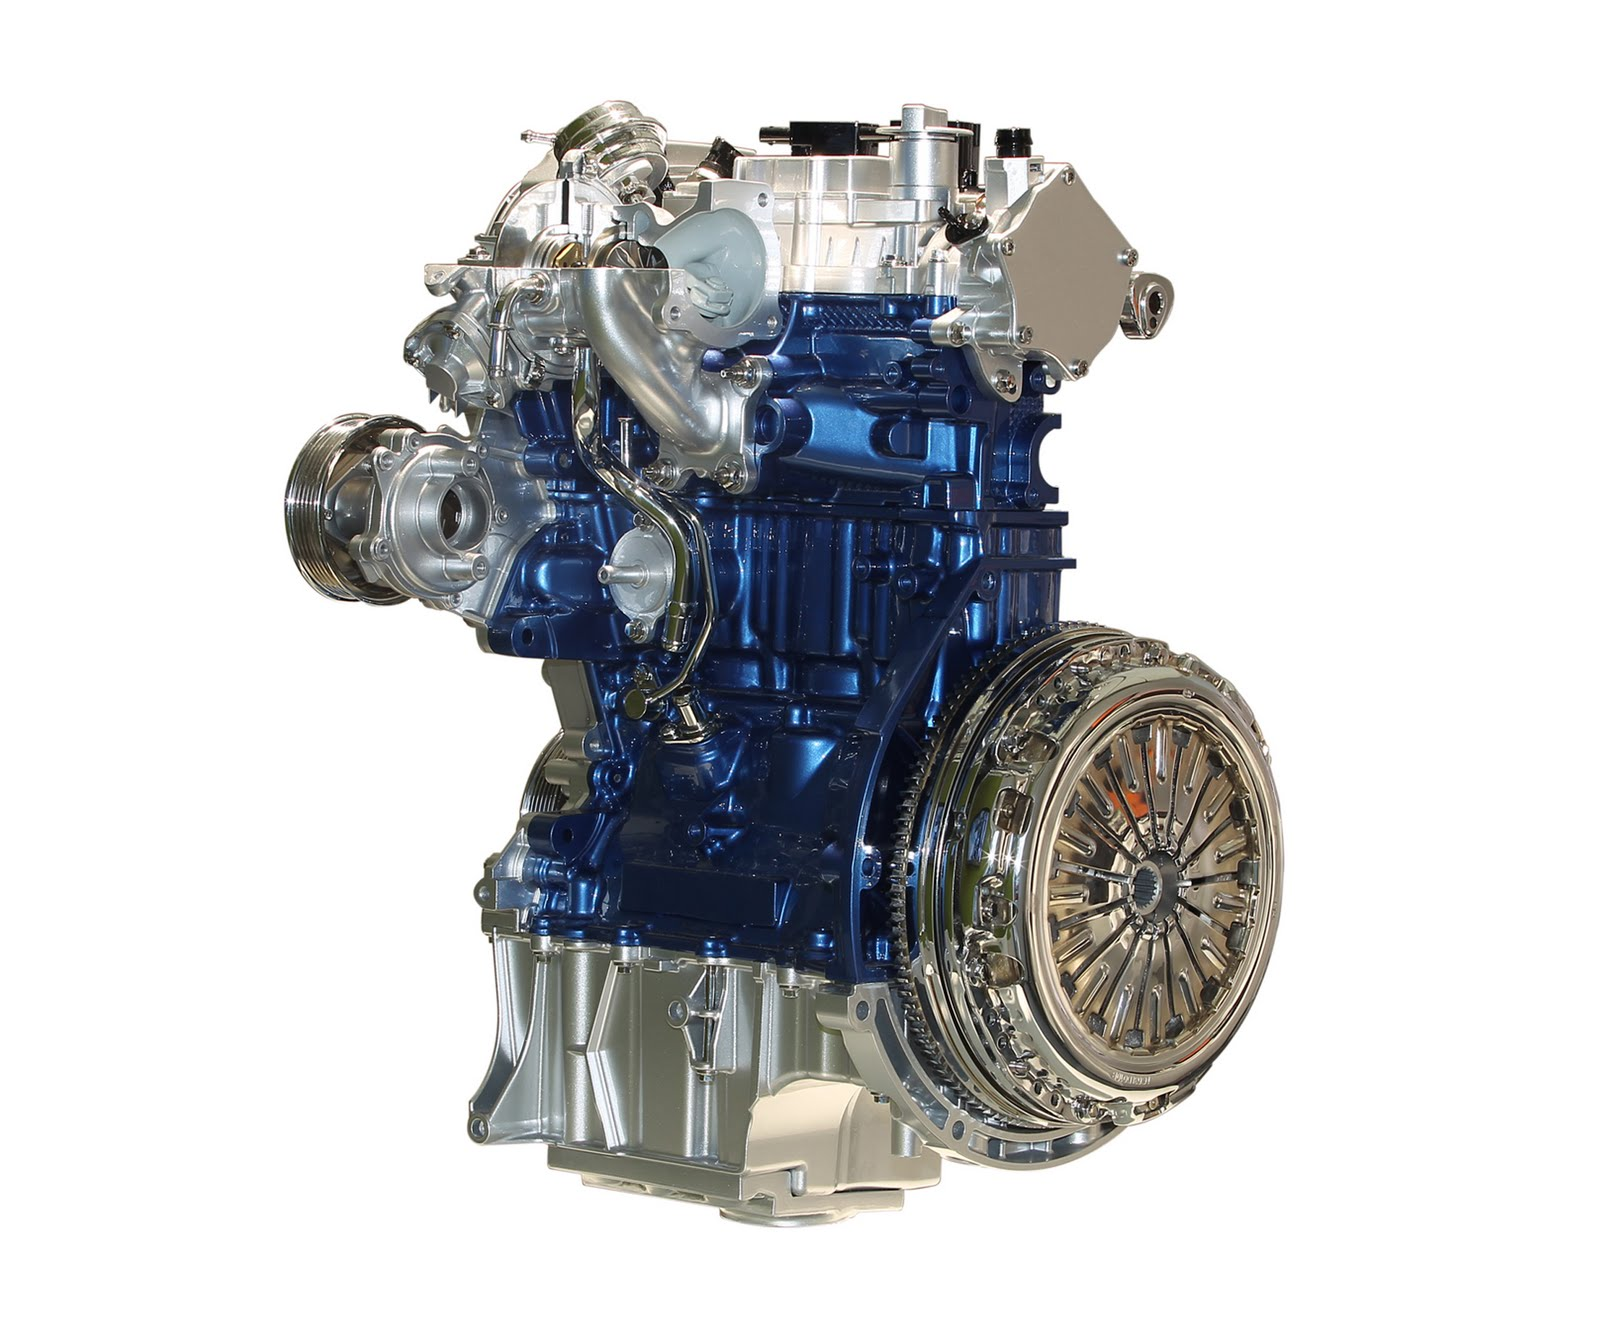 Platts hyundai used car dealership in high wycombe - New 1 0 Litre 3 Cylinder Ecoboost Is Ford S Smallest Petrol Engine